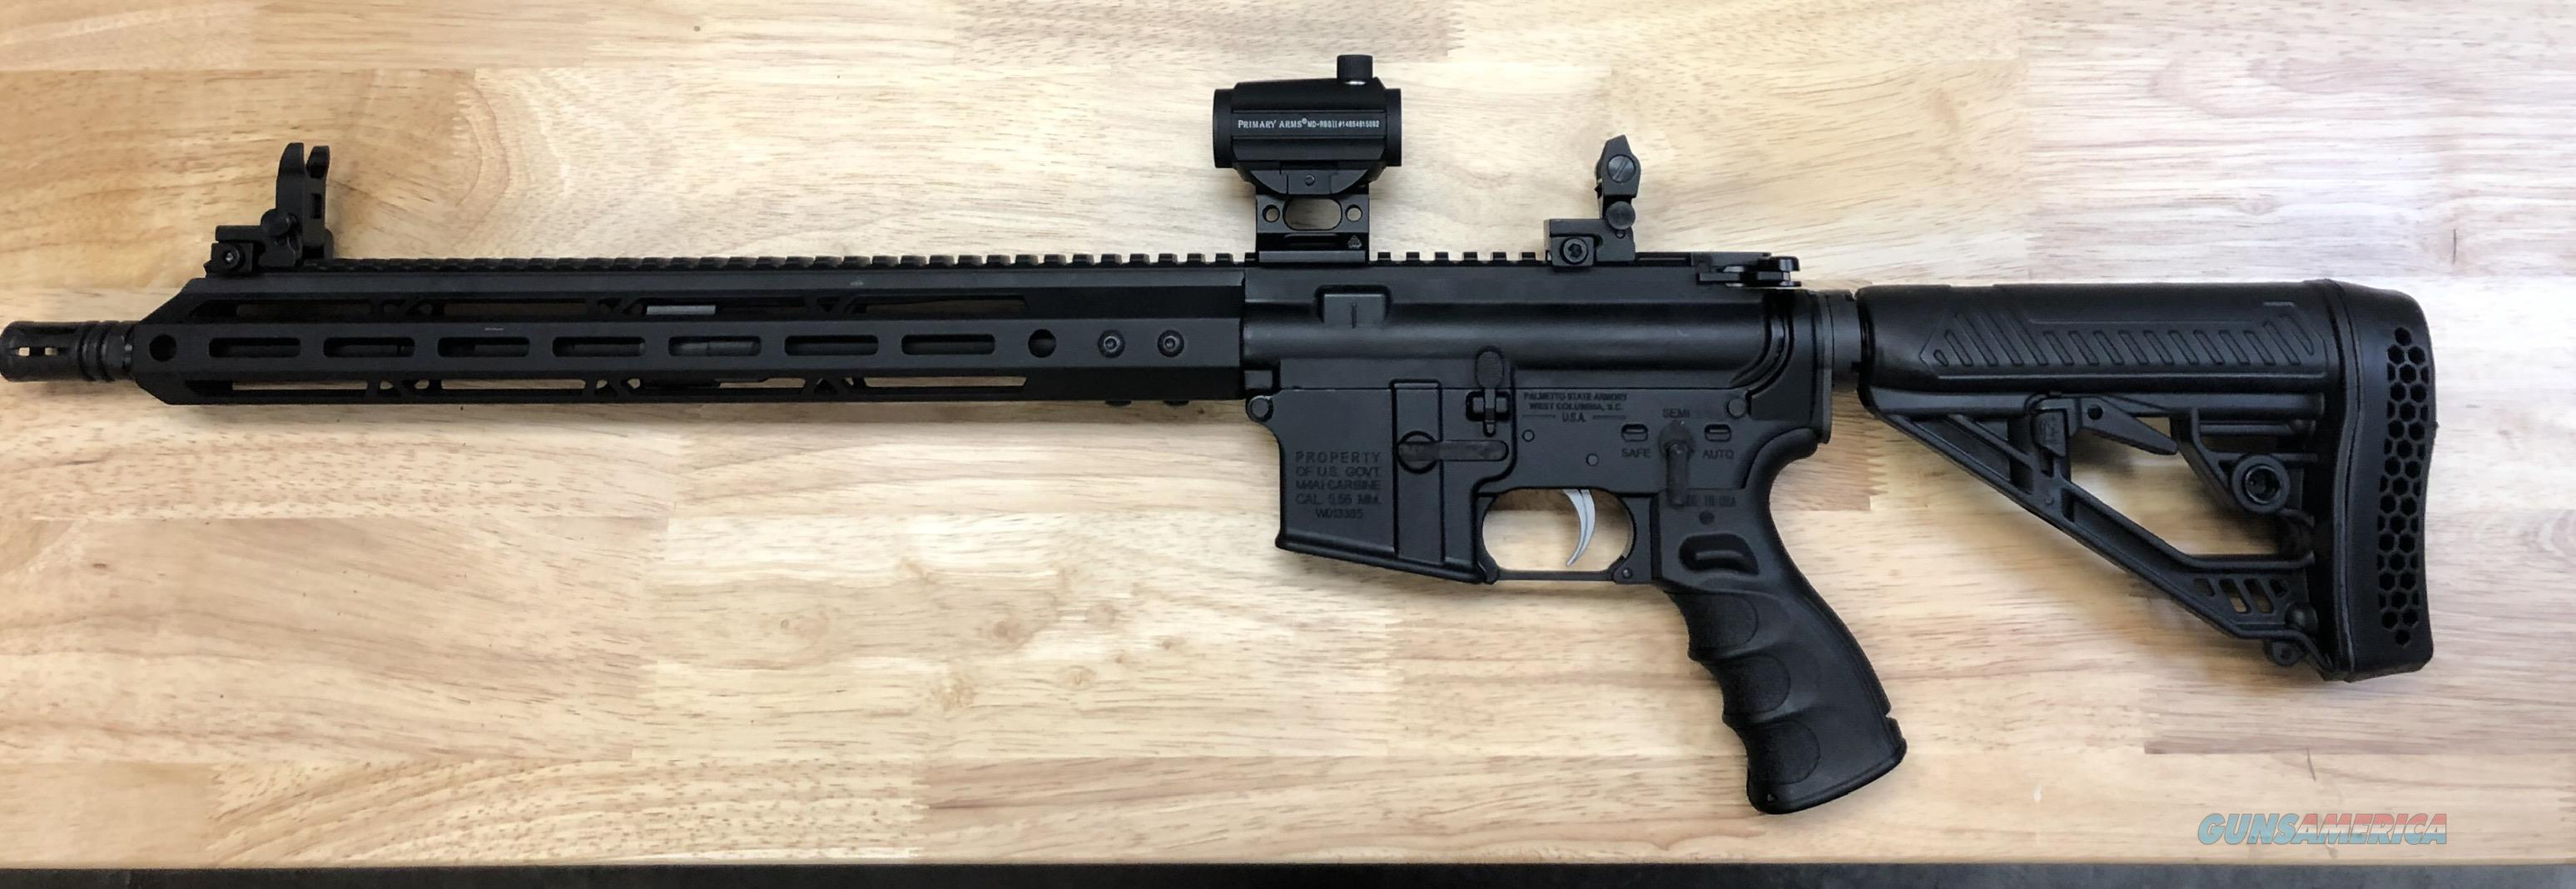 Palmetto State Armory Exclusive Lower combat rifle system  Guns > Rifles > Custom Rifles > AR-15 Family